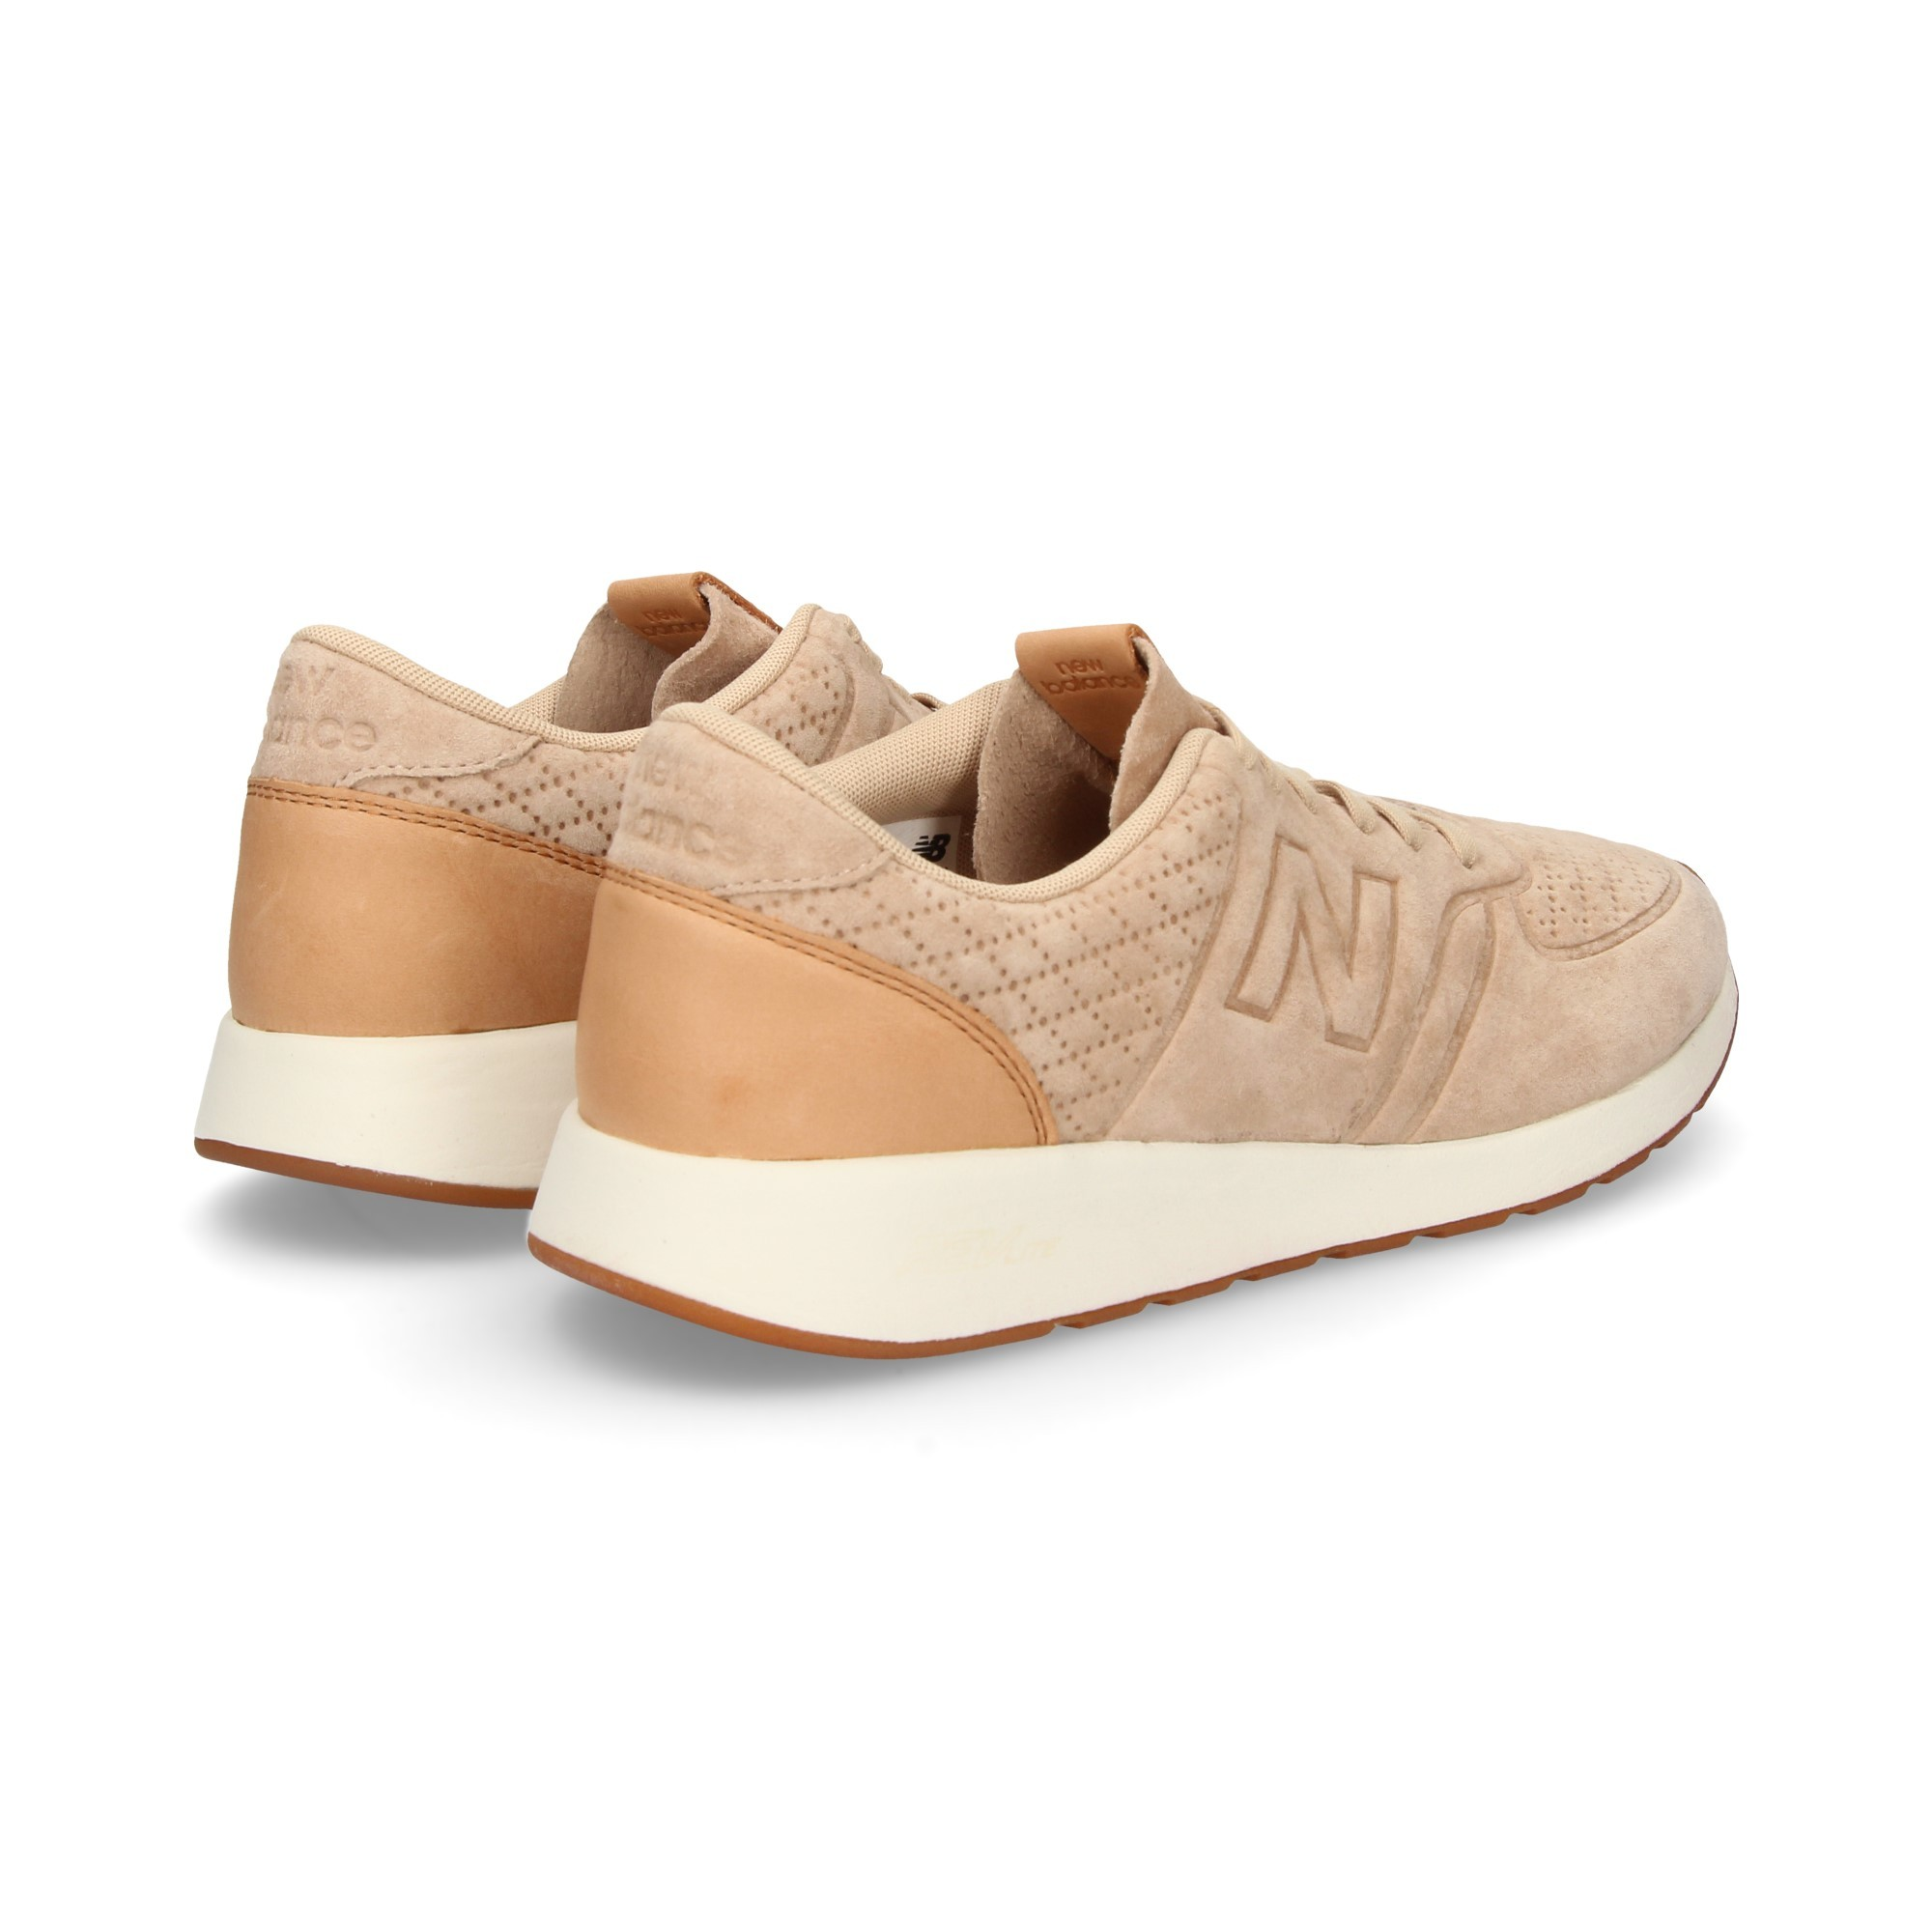 deprombos-picados-ante-beige